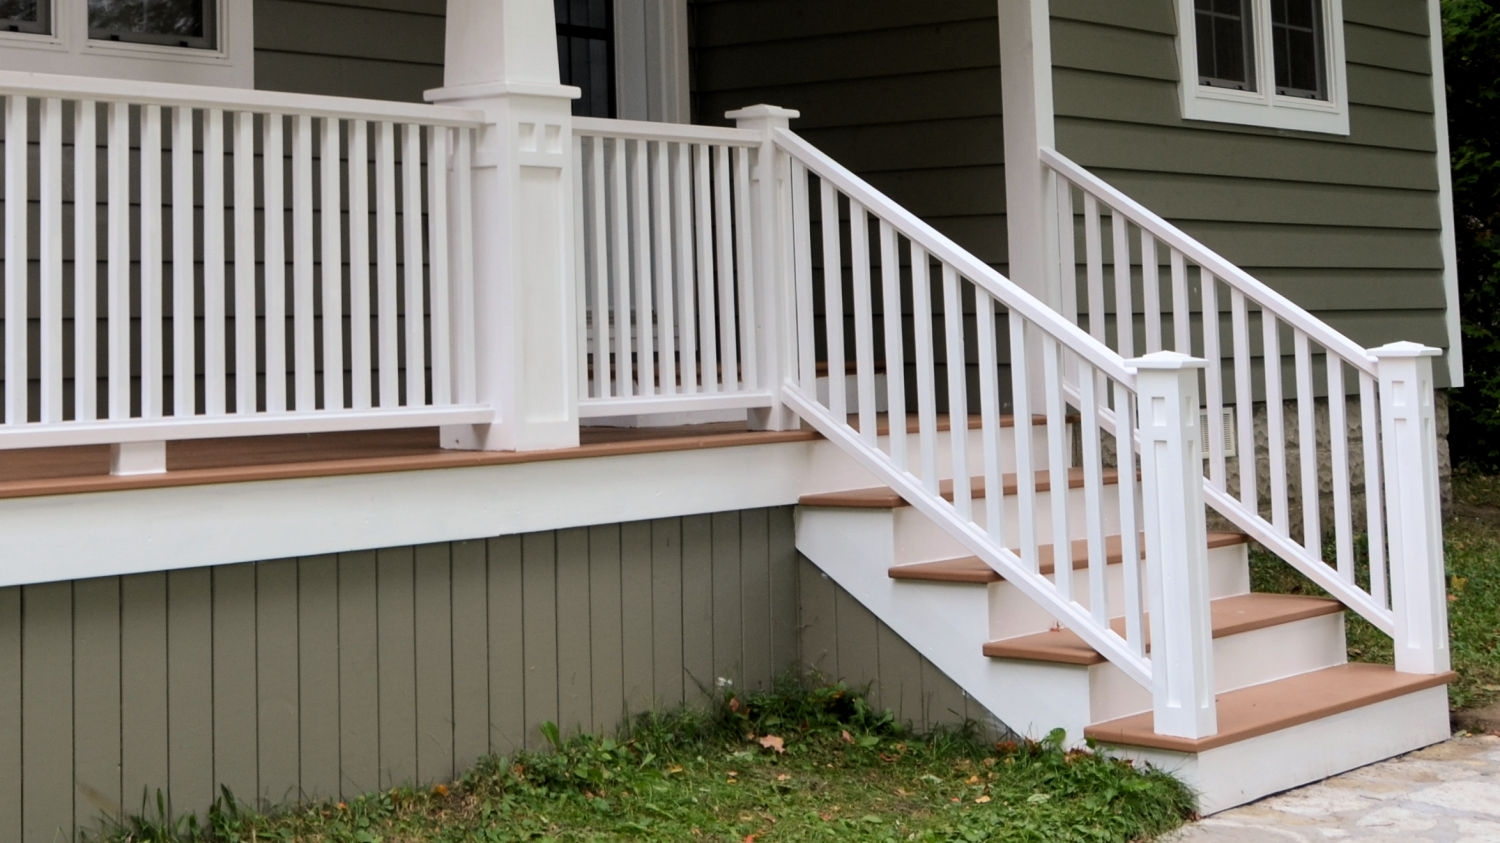 How To Make Porch Railings Ibuildit Ca   Exterior Handrails Near Me   Wire   Iron   Screen   Diy   Post